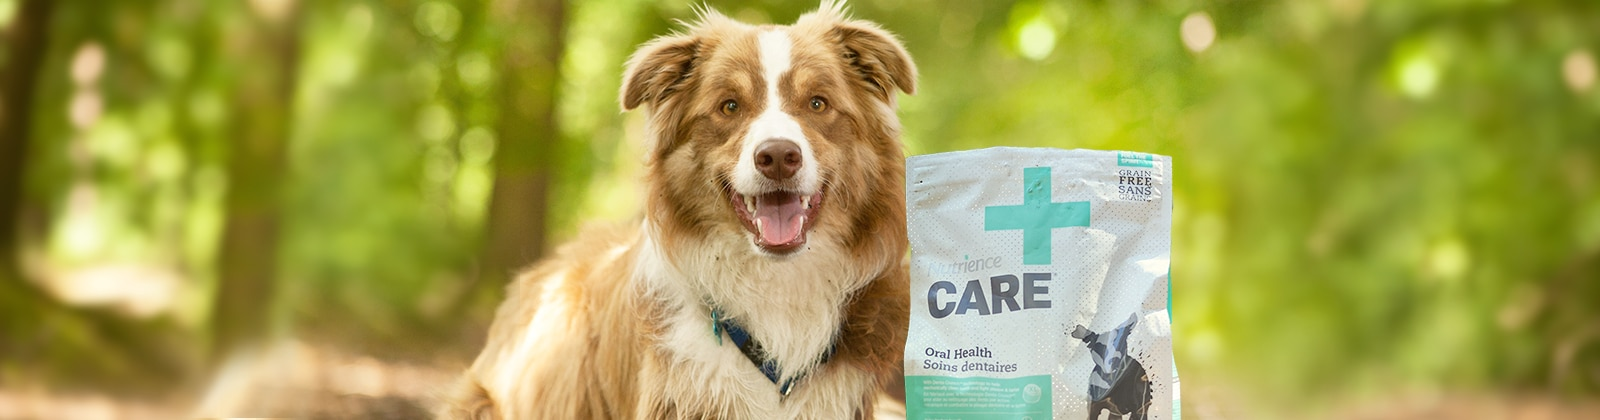 Nutrience Care for dogs